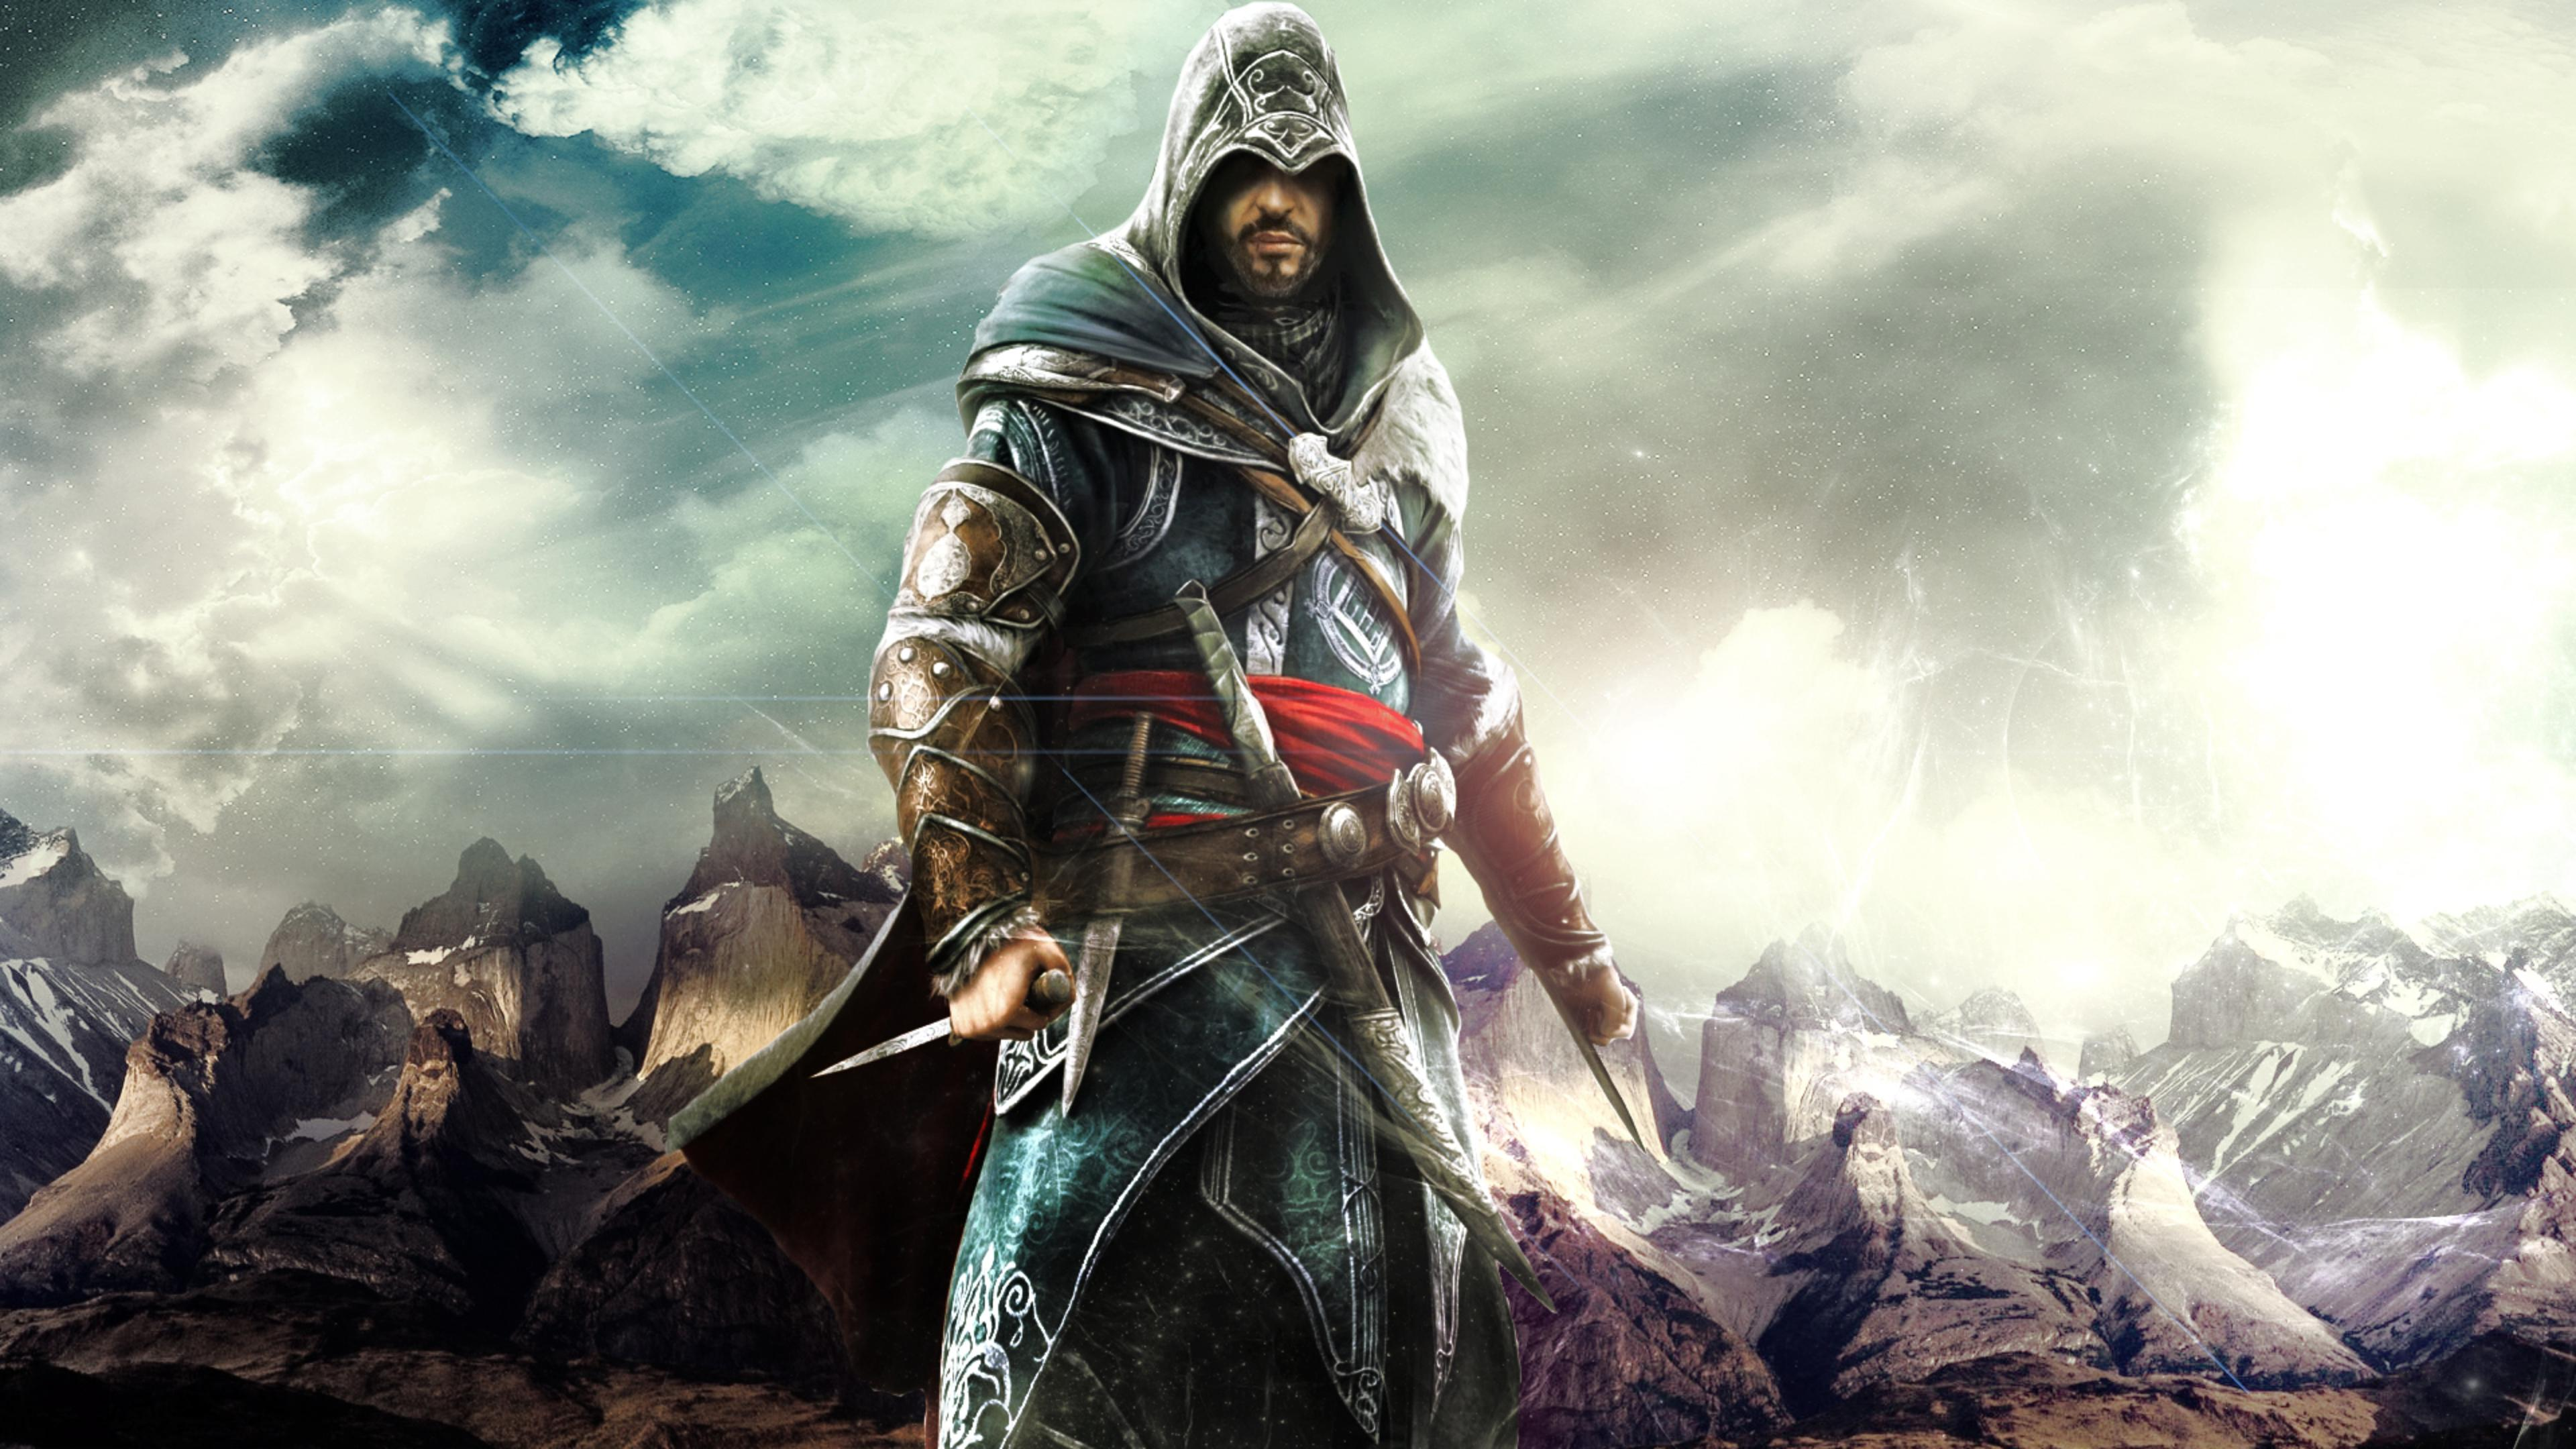 Assassin 4k Wallpapers For Your Desktop Or Mobile Screen Free And Easy To Download